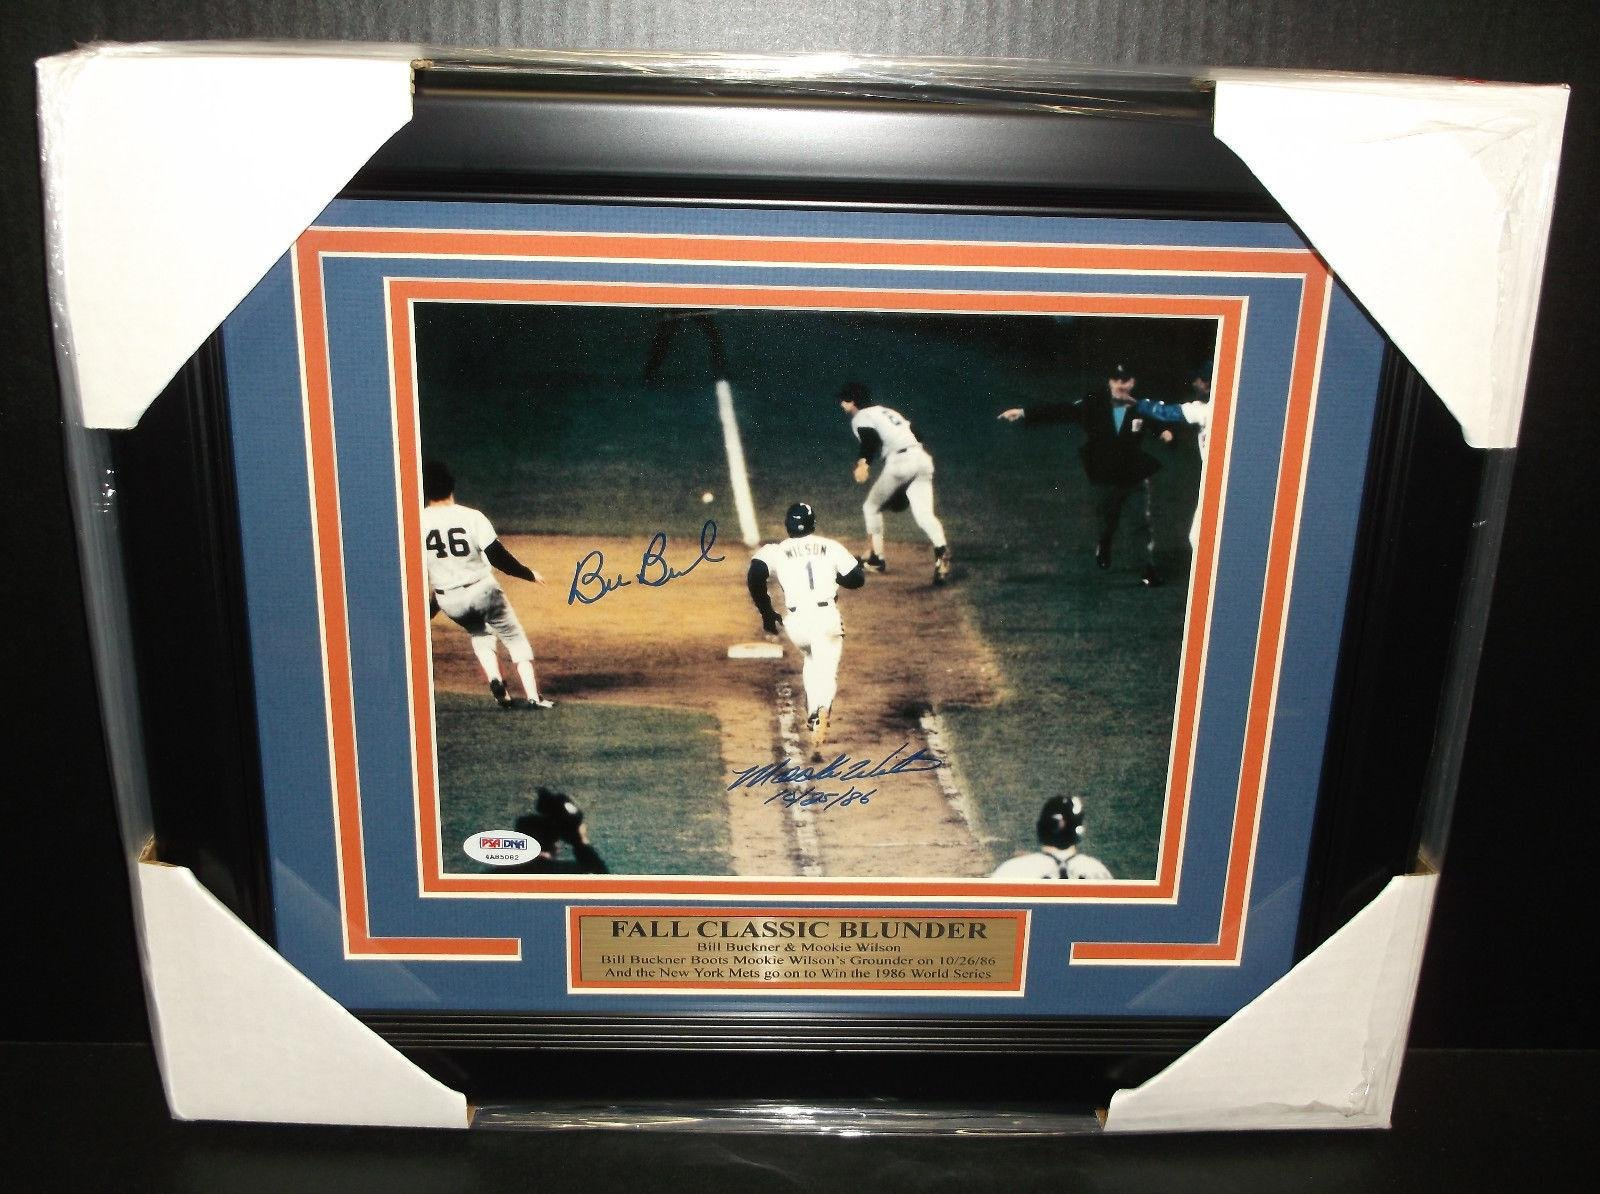 Mookie Wilson Bill Buckner Autographed 8x10 Photo 1986 World Series Framed PSA/DNA Certified Autographed MLB Photos